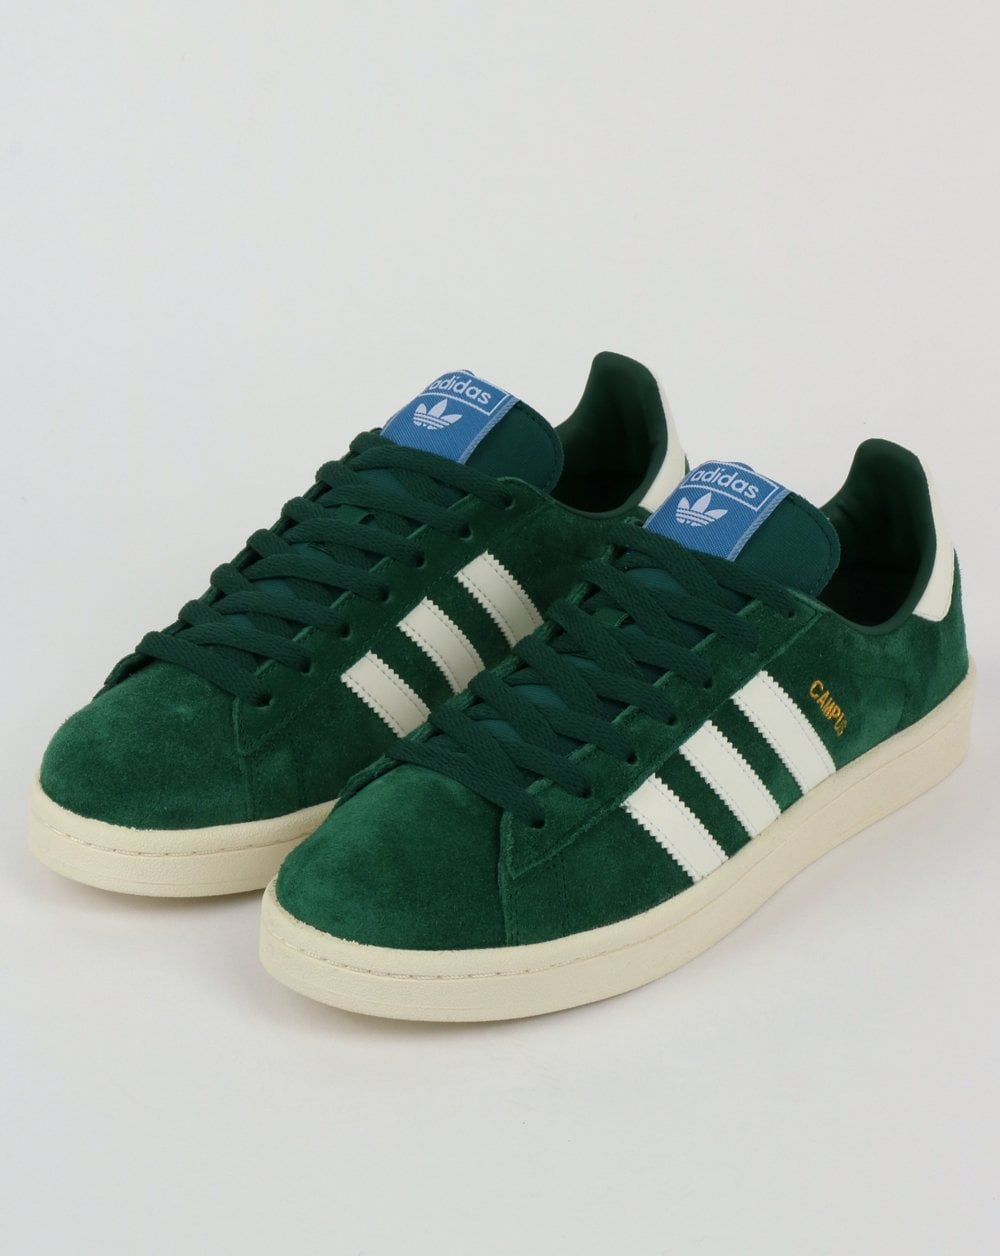 new concept 4545b c42cc Adidas Campus Trainers Green,shoes,suede,originals